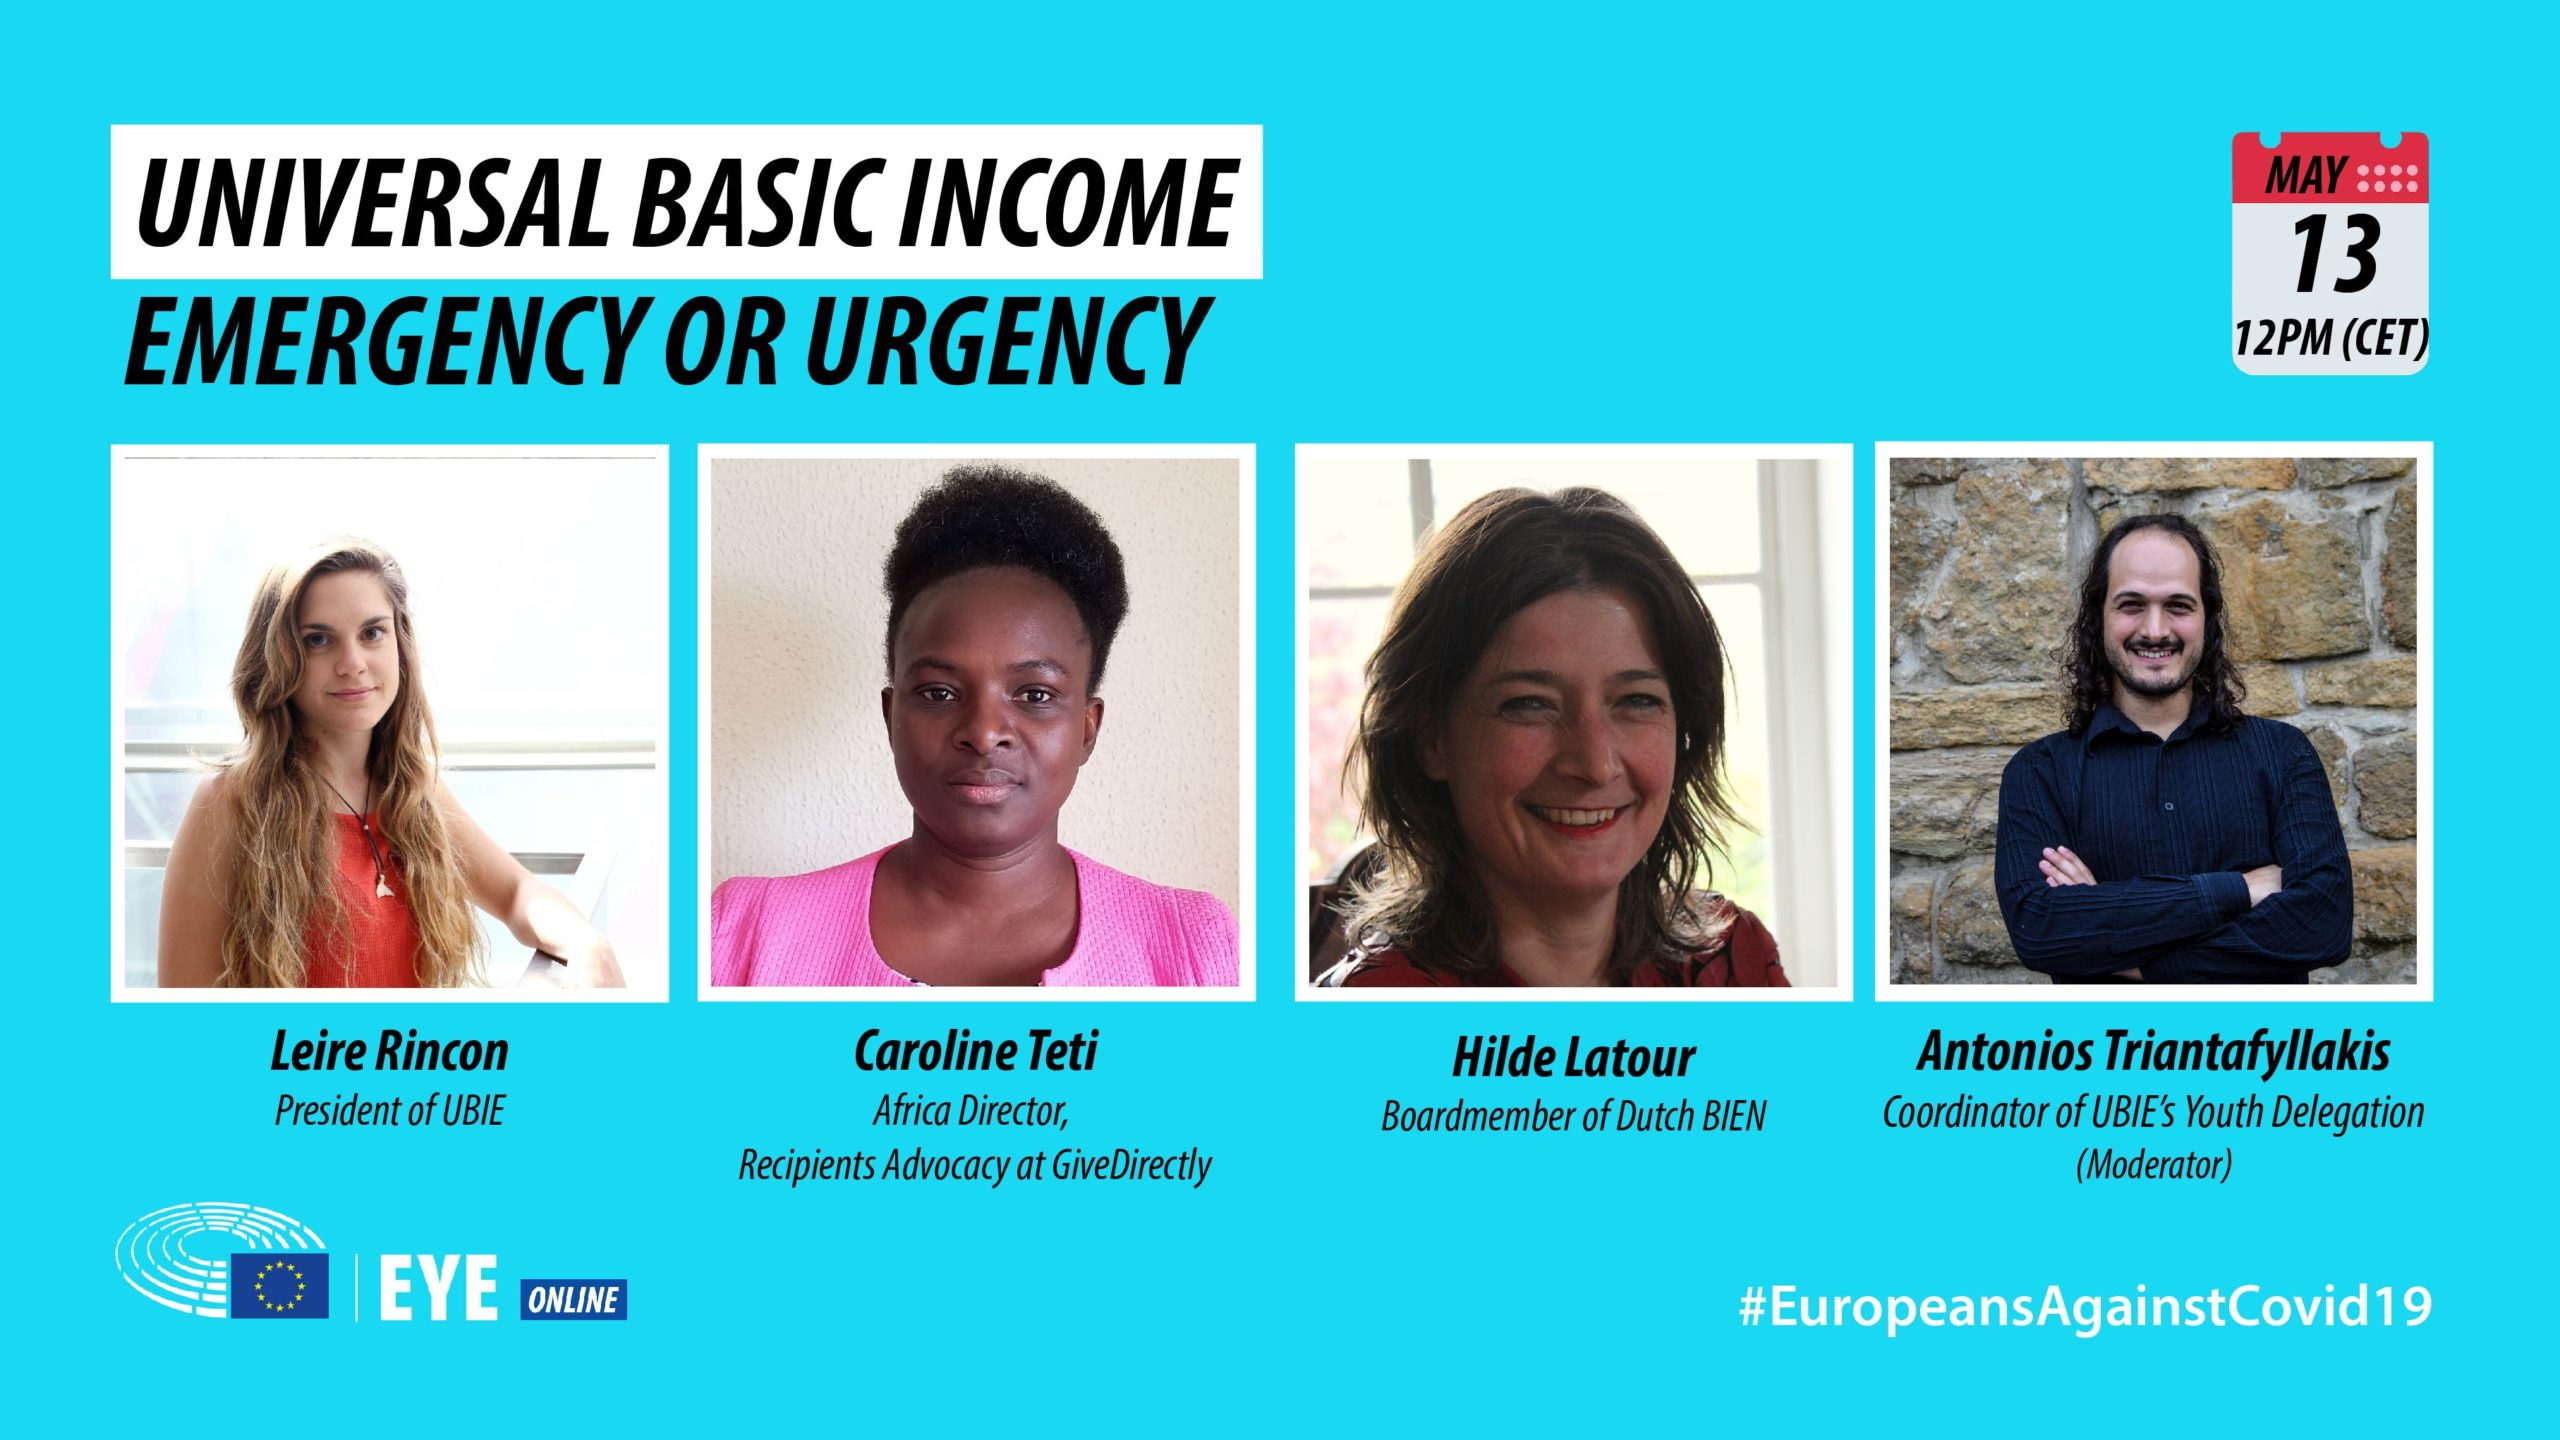 "promo image for ""Universal Basic Income: Emergency or Urgency"" by UBIE Youth Group for the EYE Online, showing the faces of Leire Rincon, Caroline Teti, Hilde Latour and Antonios Triantafylllakis"